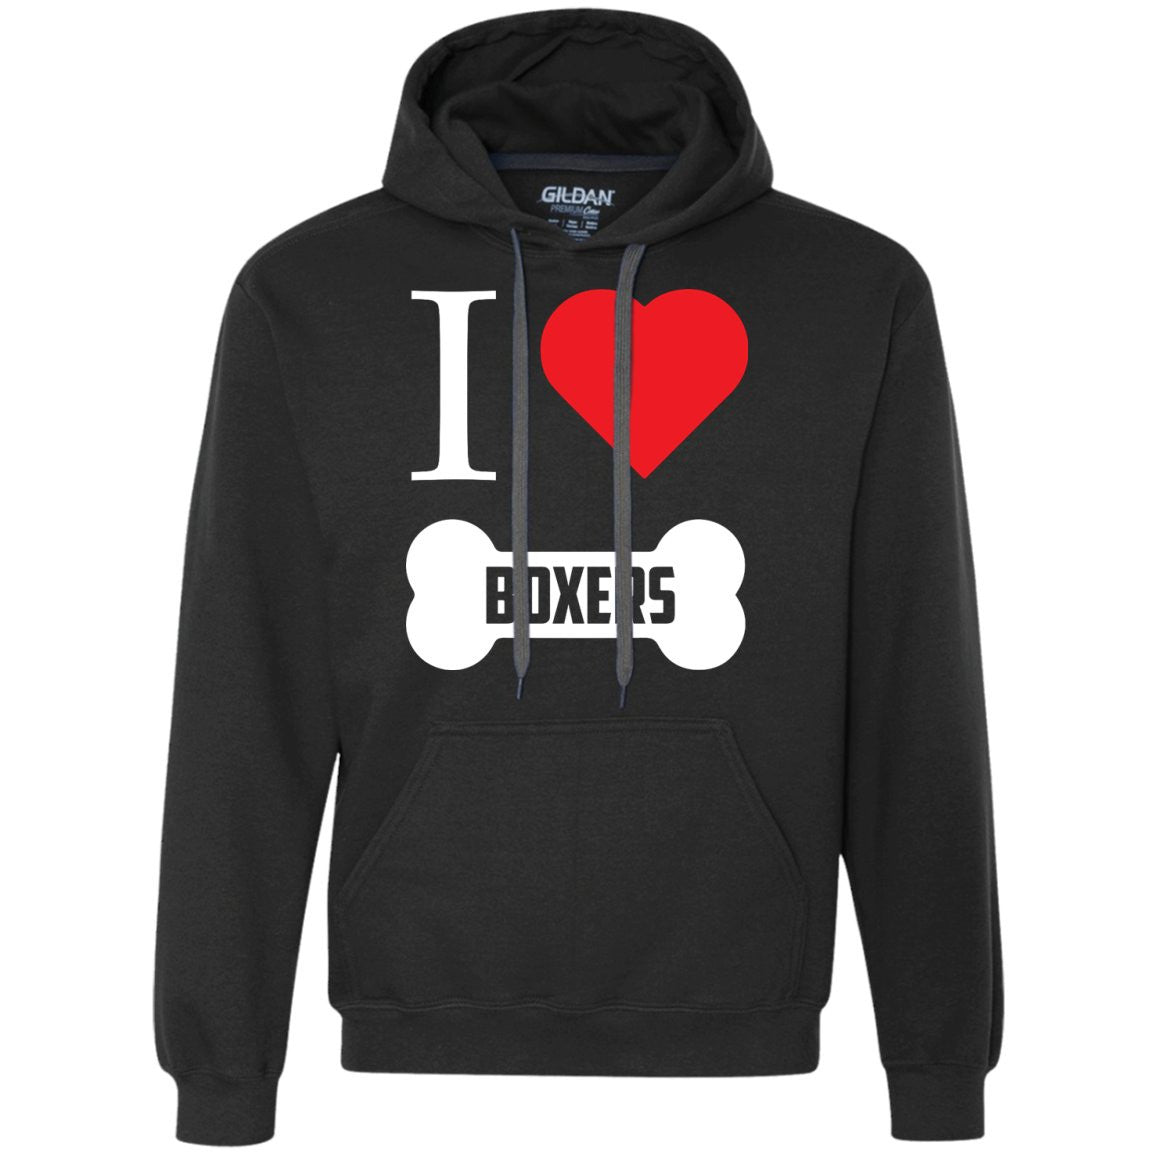 Boxer - I LOVE MY BOXER (BONE DESIGN) - Heavyweight Pullover Fleece Sweatshirt